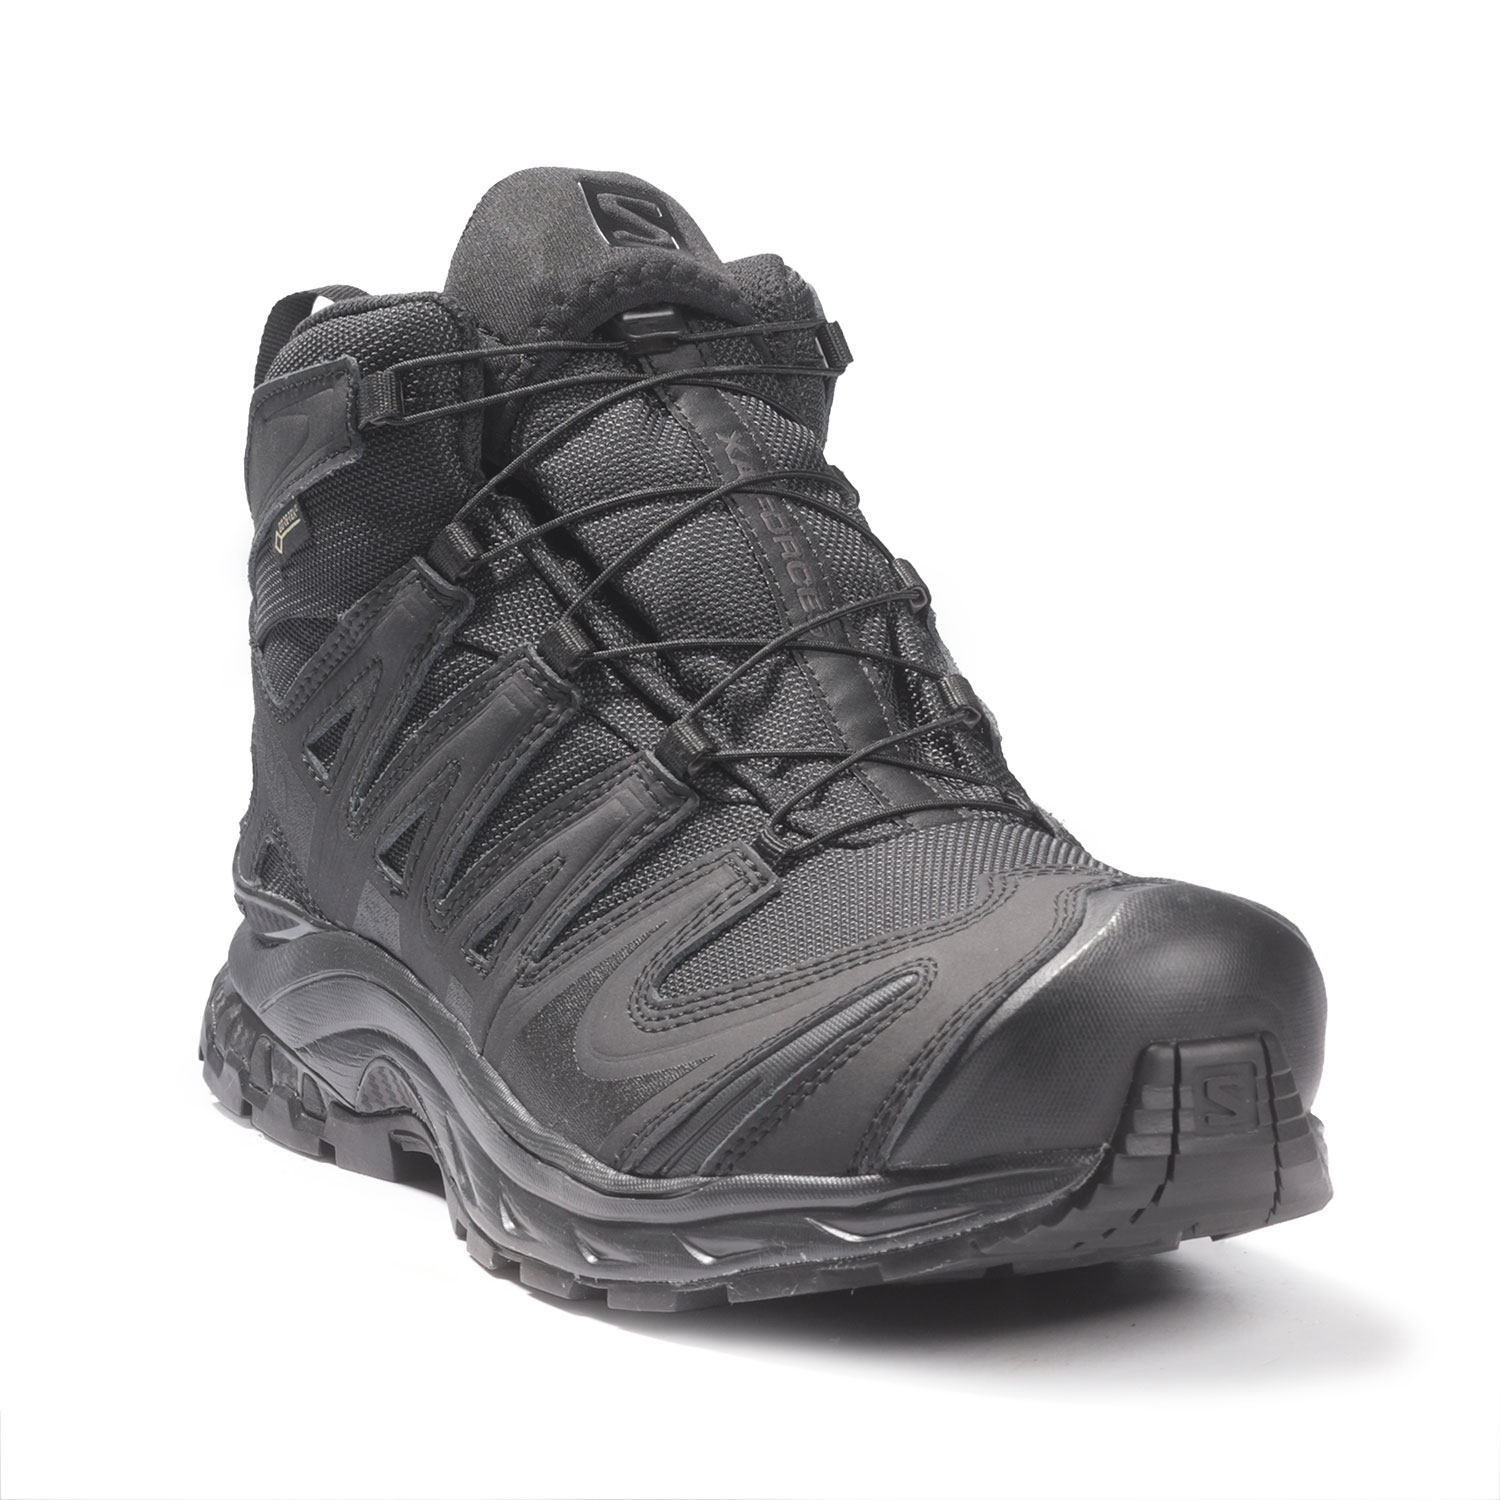 Gtx Xa Salomon Quarterboot Mid Forces UqcpzUOxwR